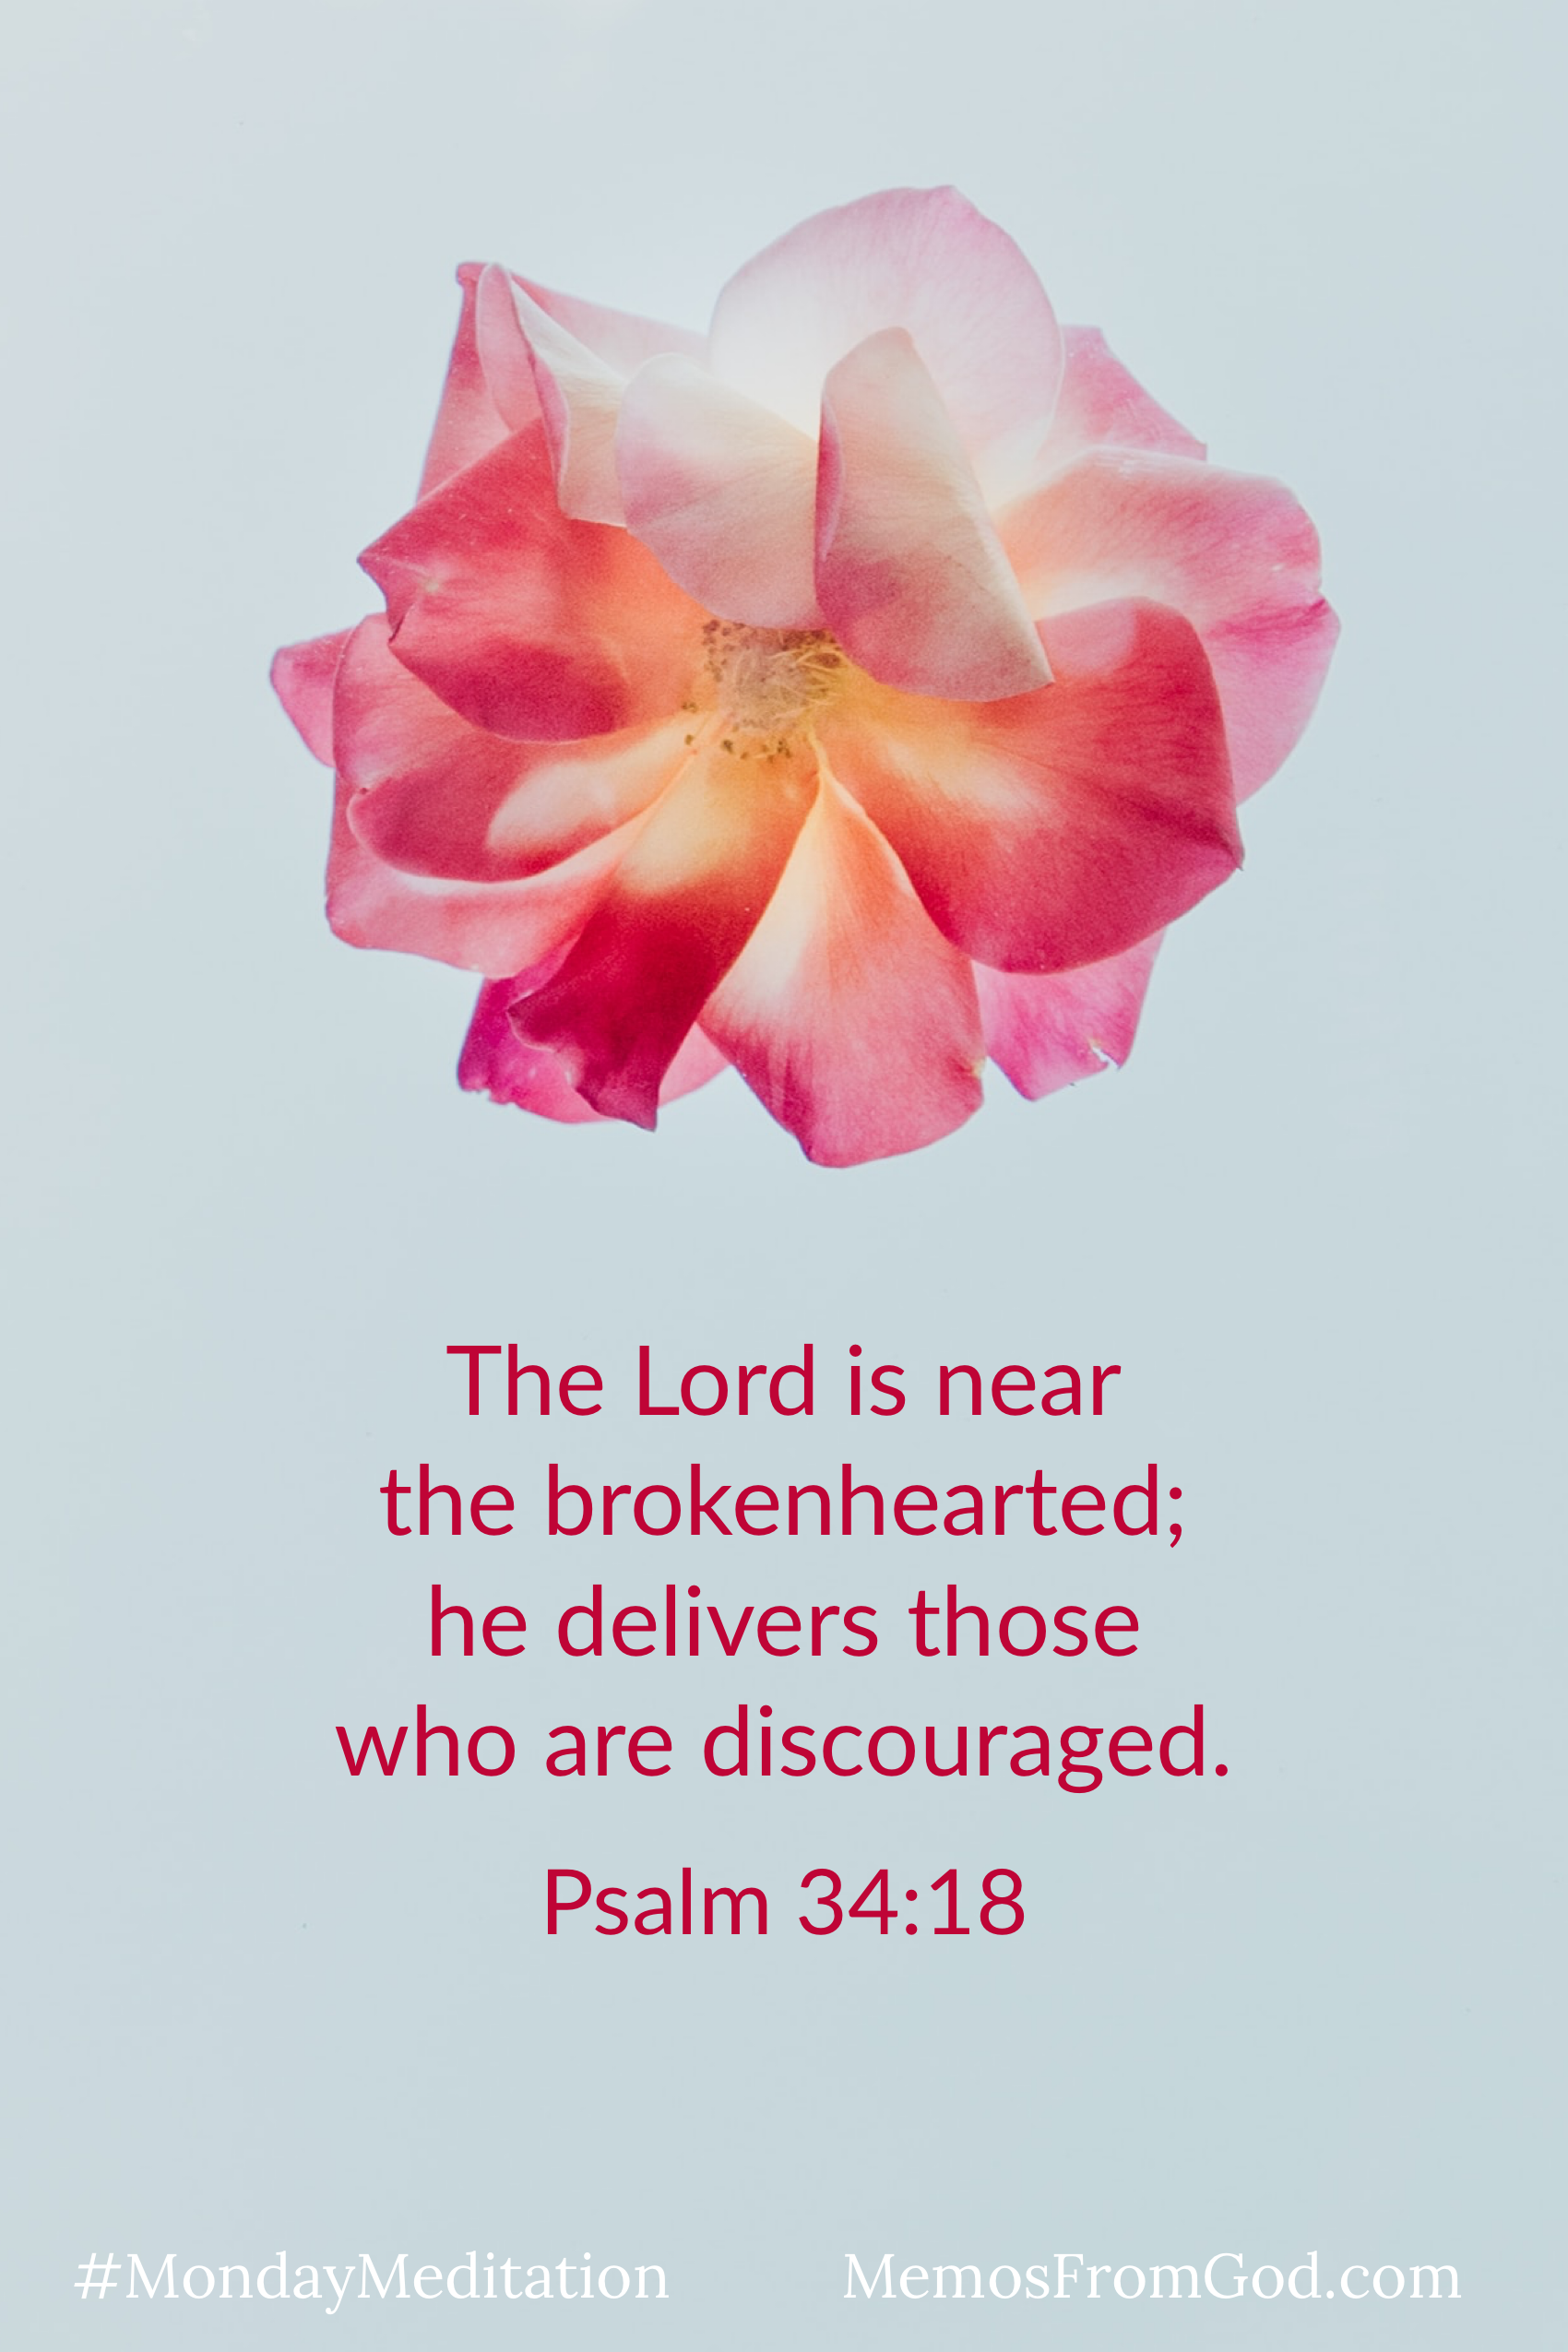 A multi-toned pink flower on a grey background. Caption: The Lord is near the brokenhearted; he delivers those who are discouraged. Psalm 34:18